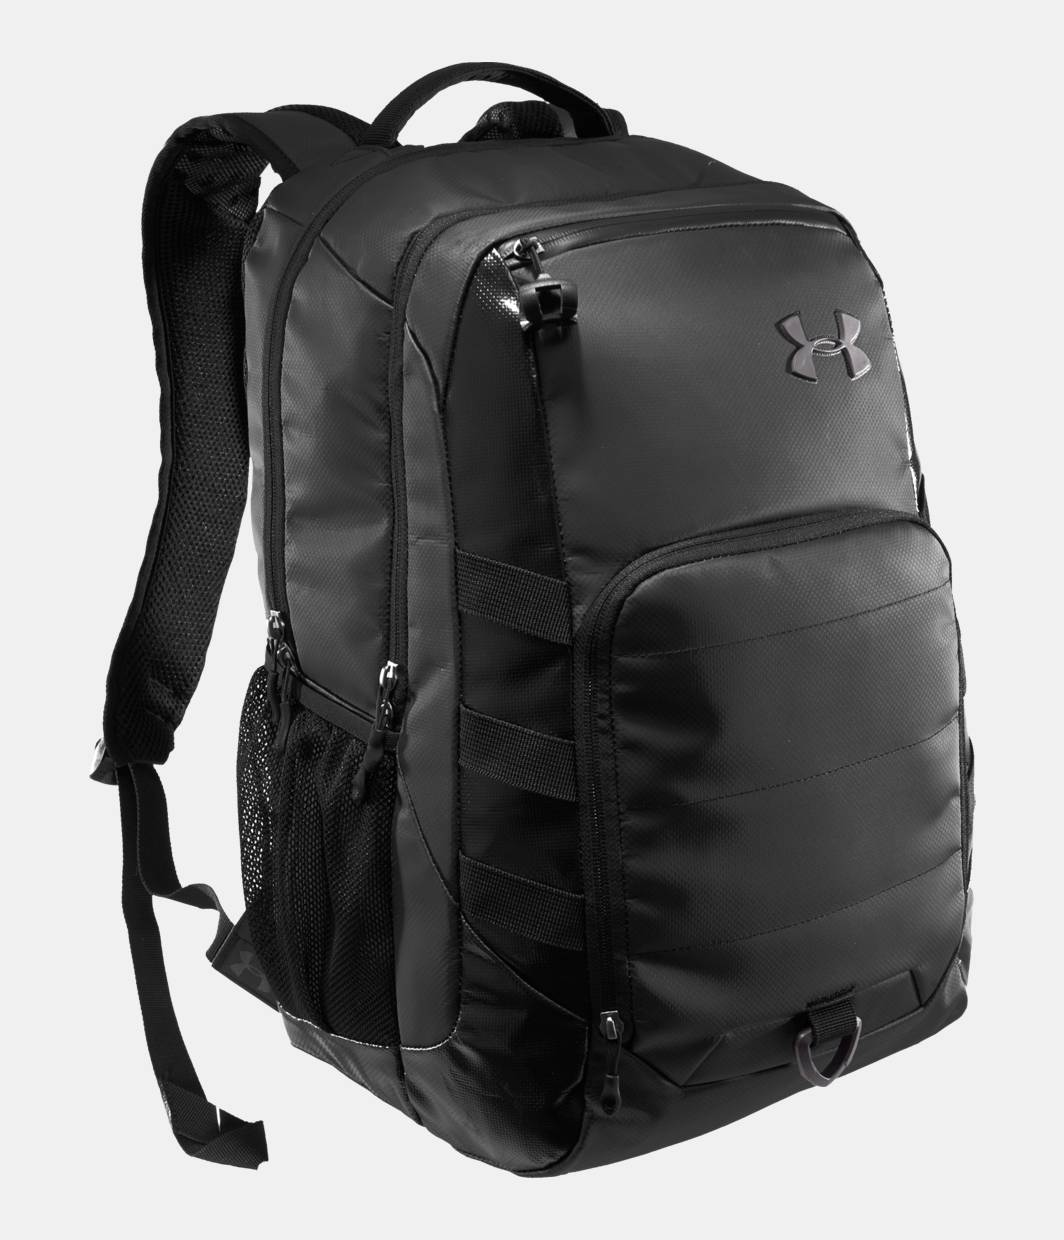 Under Armour Mesh Backpack Black- Fenix Toulouse Handball b084525298504